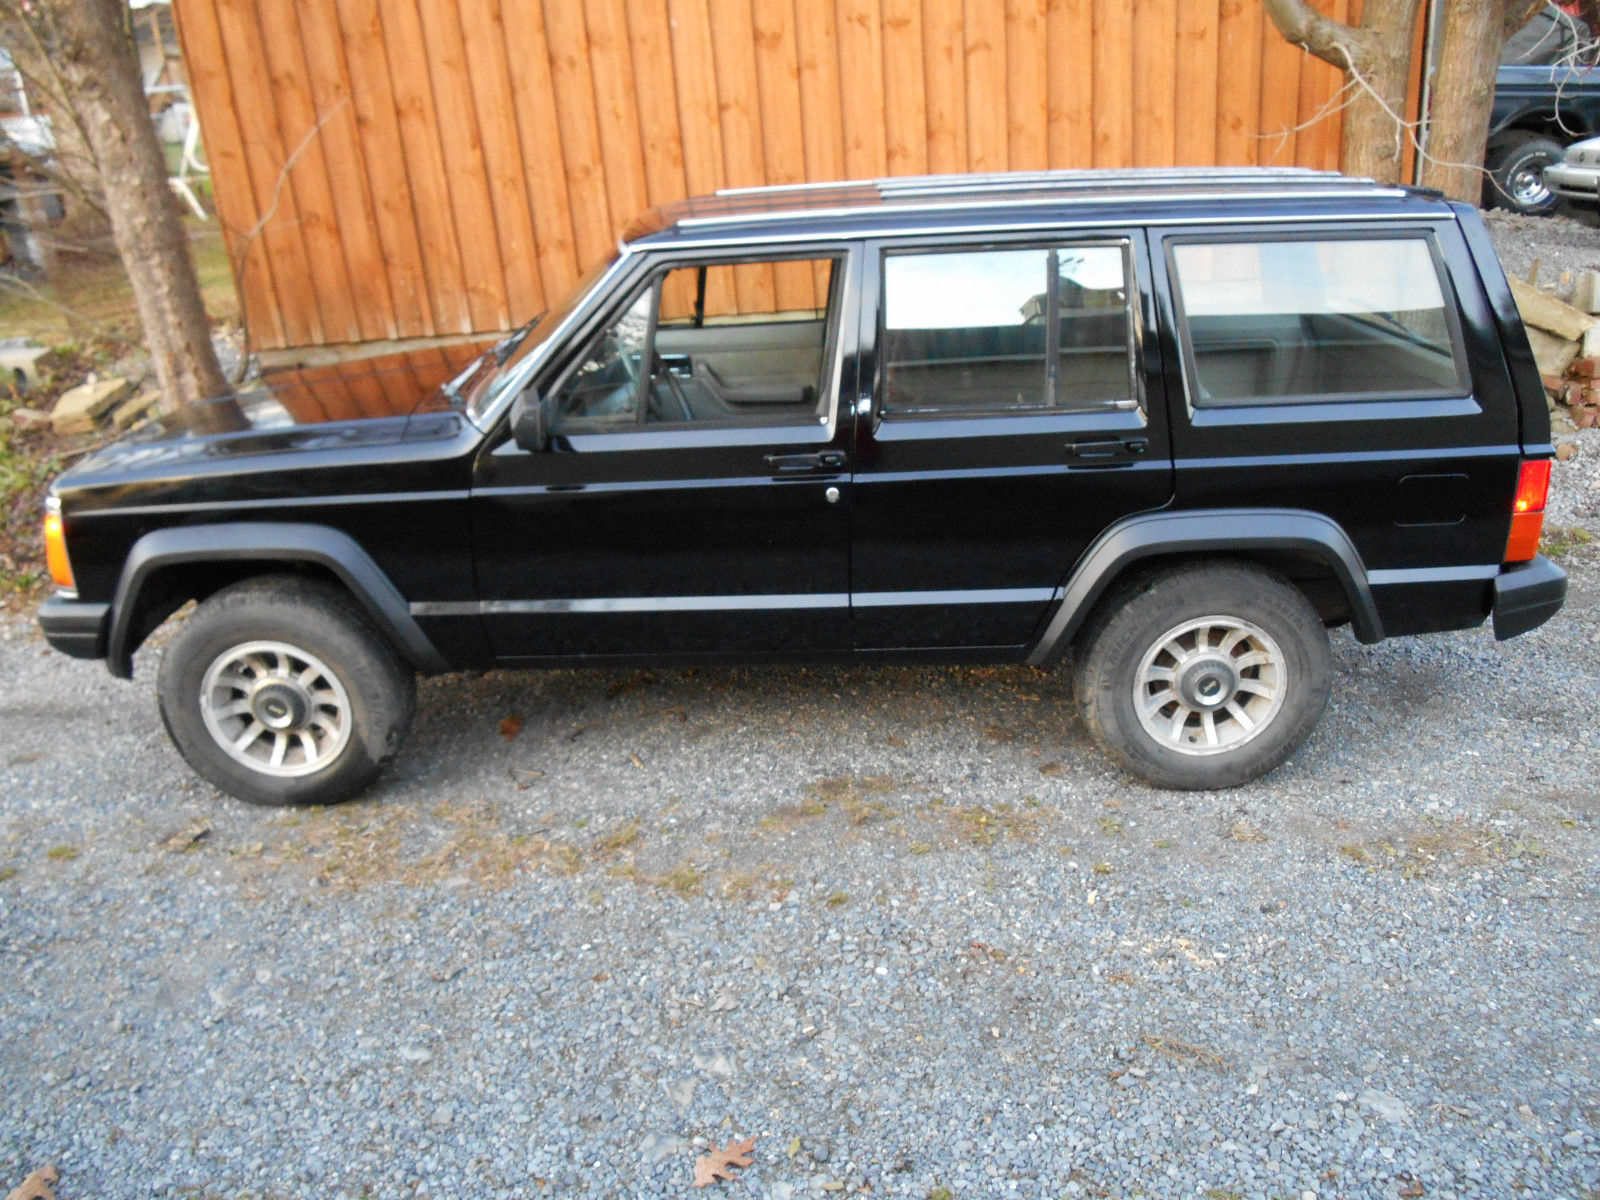 1989 jeep cherokee laredo xj 4 0l classic jeep cherokee 1989 for sale. Black Bedroom Furniture Sets. Home Design Ideas